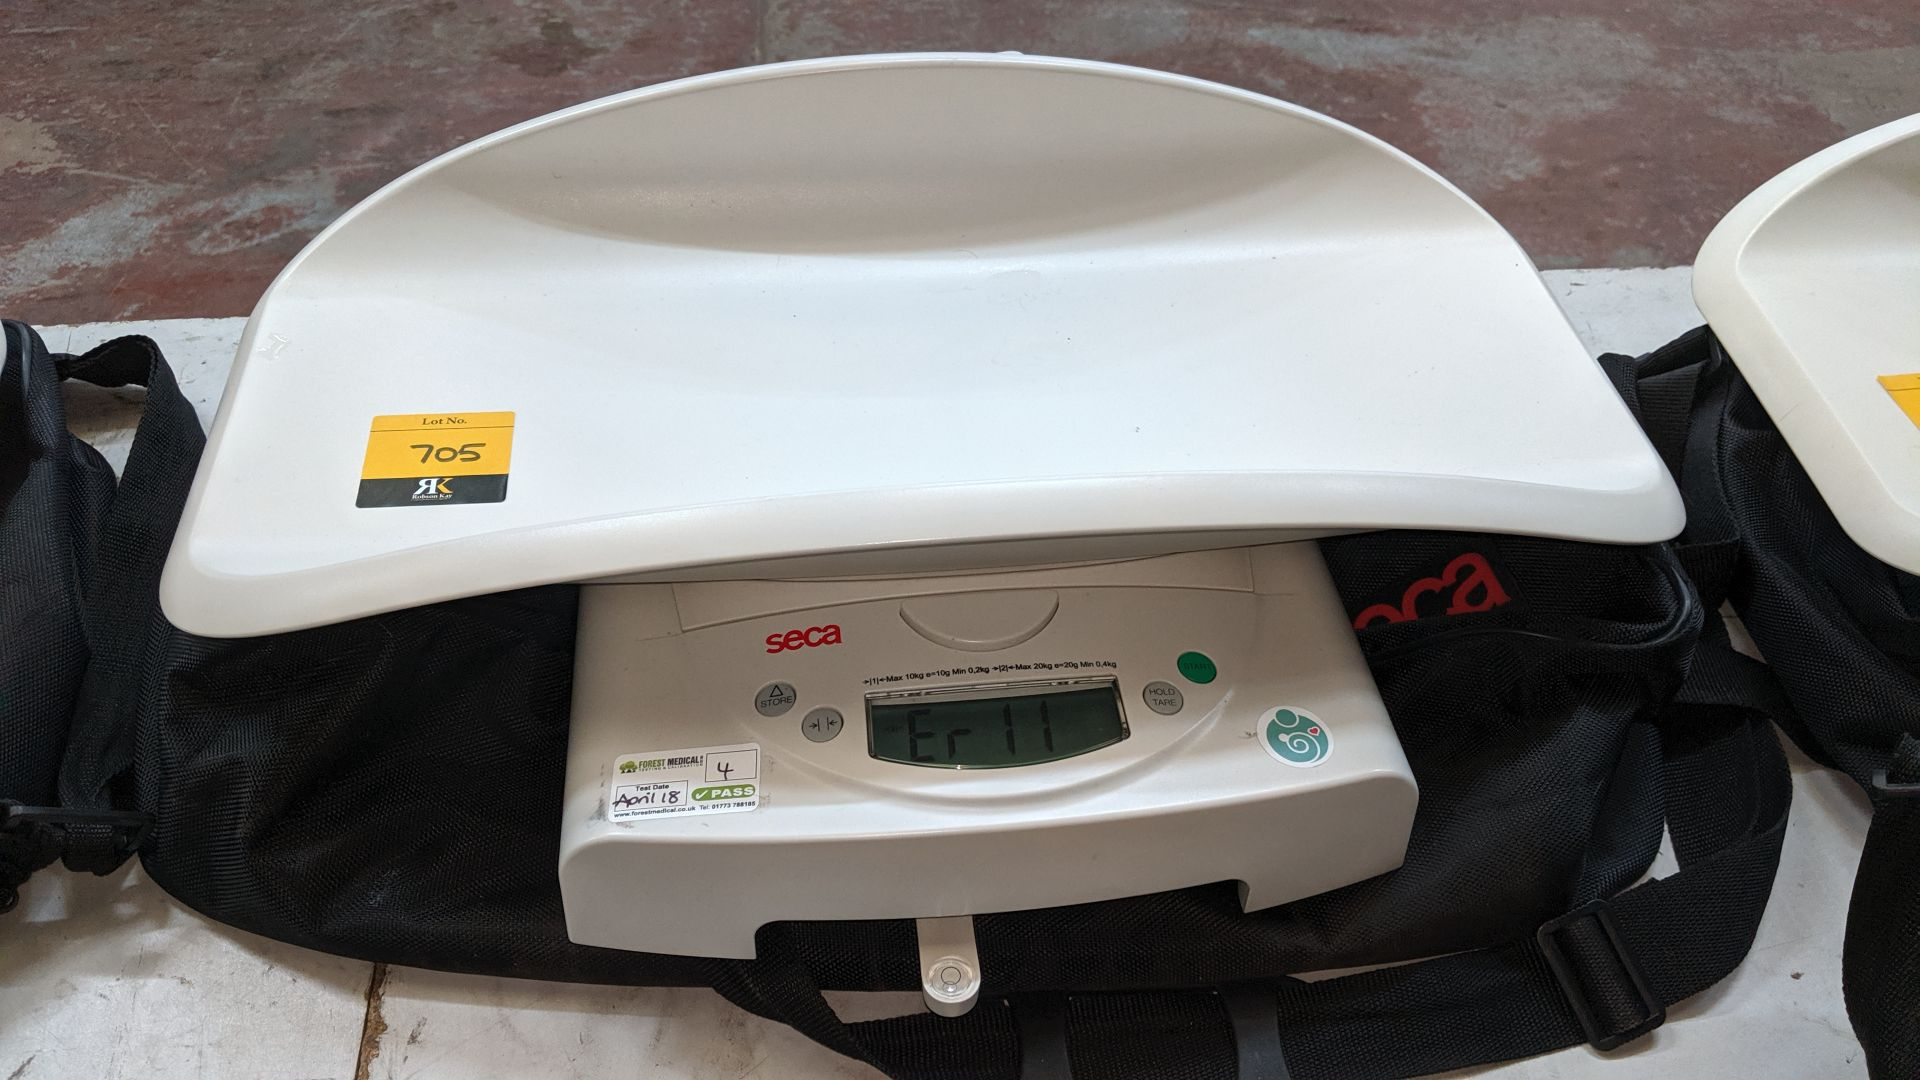 Lot 705 - Seca model 384 baby scales max. capacity 20kg. This is one of a large number of lots used/owned by